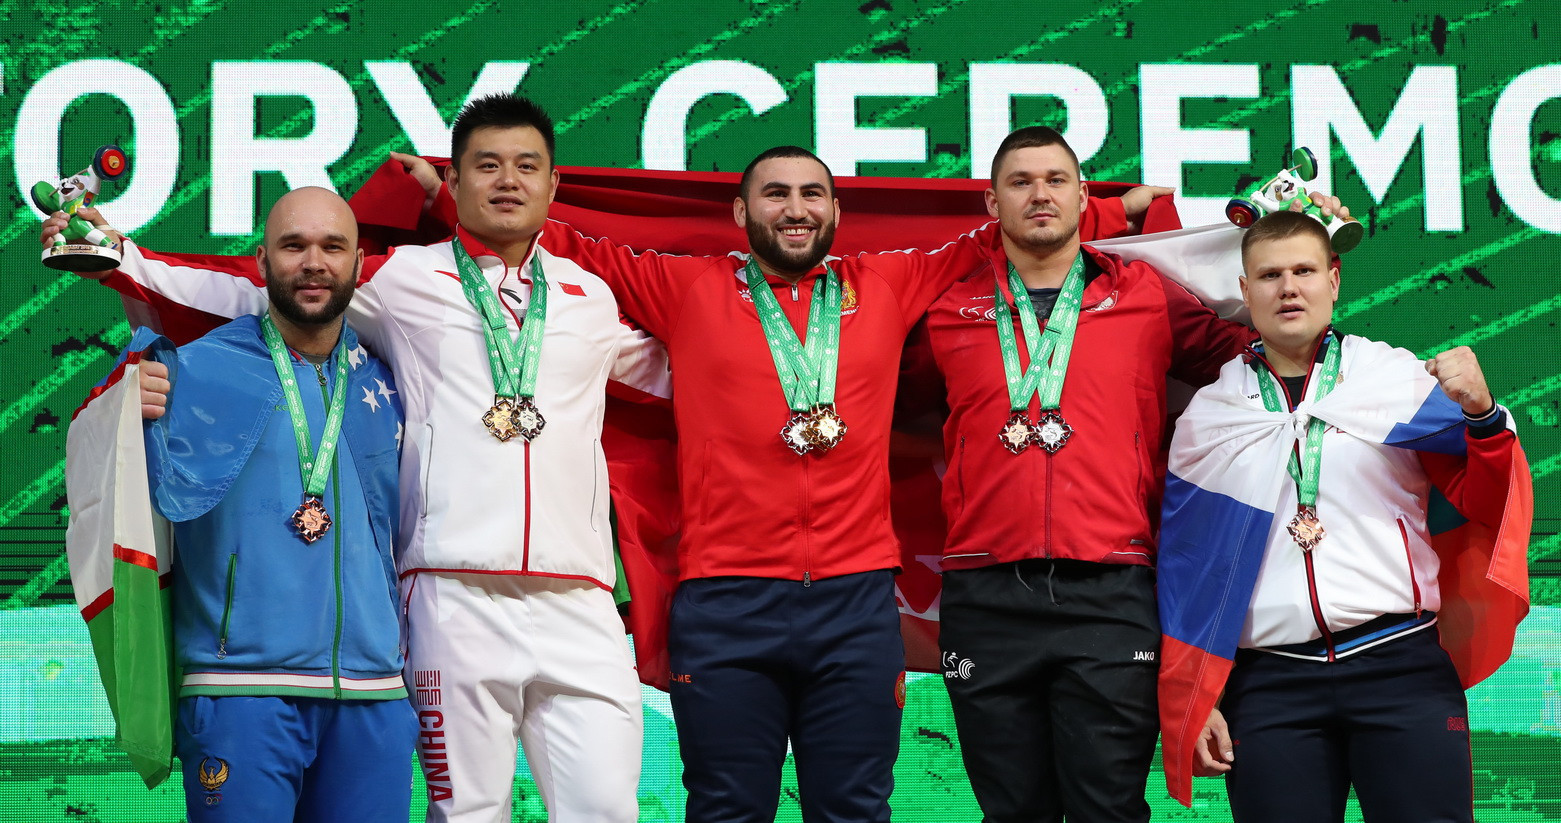 Armenia's Martirosyan shines on day nine of 2018 IWF World Championships as China increase gold medal tally